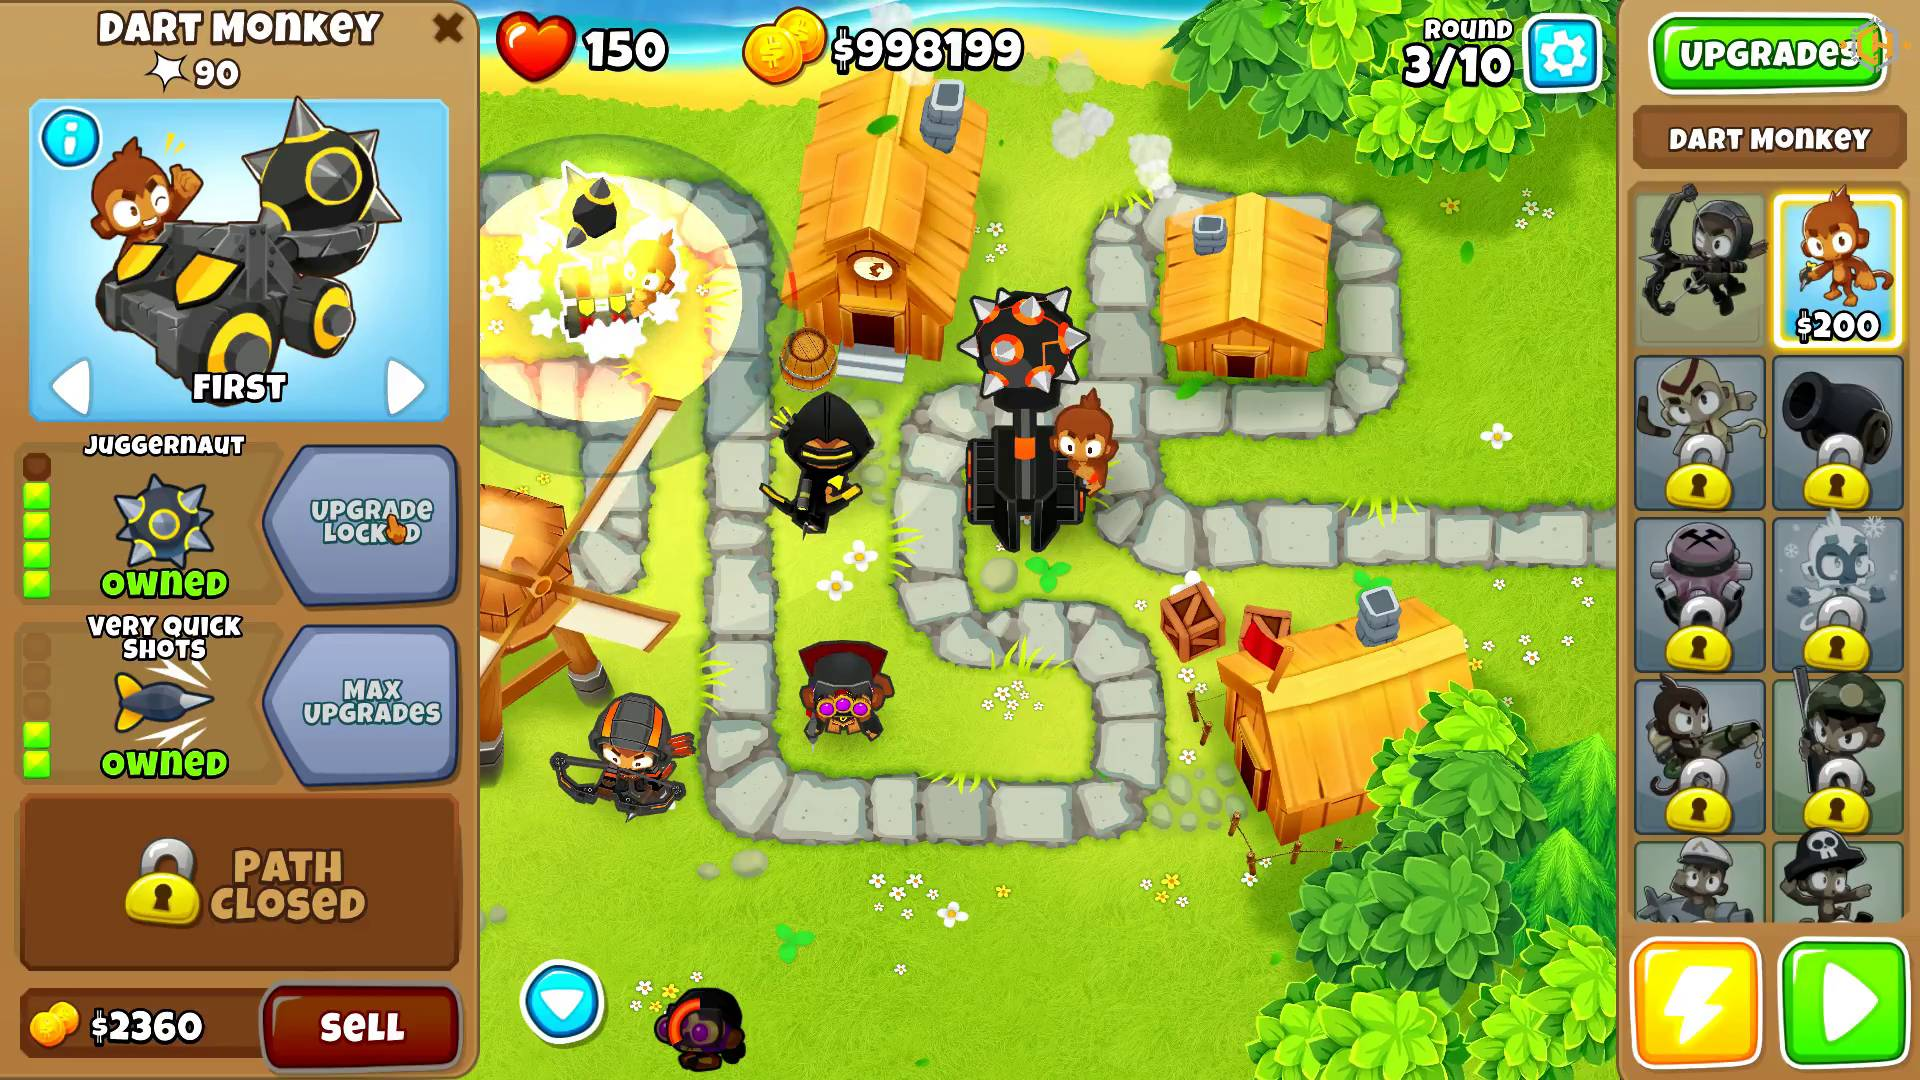 bloons tower defense 4 hacked everything unlocked and infinite money